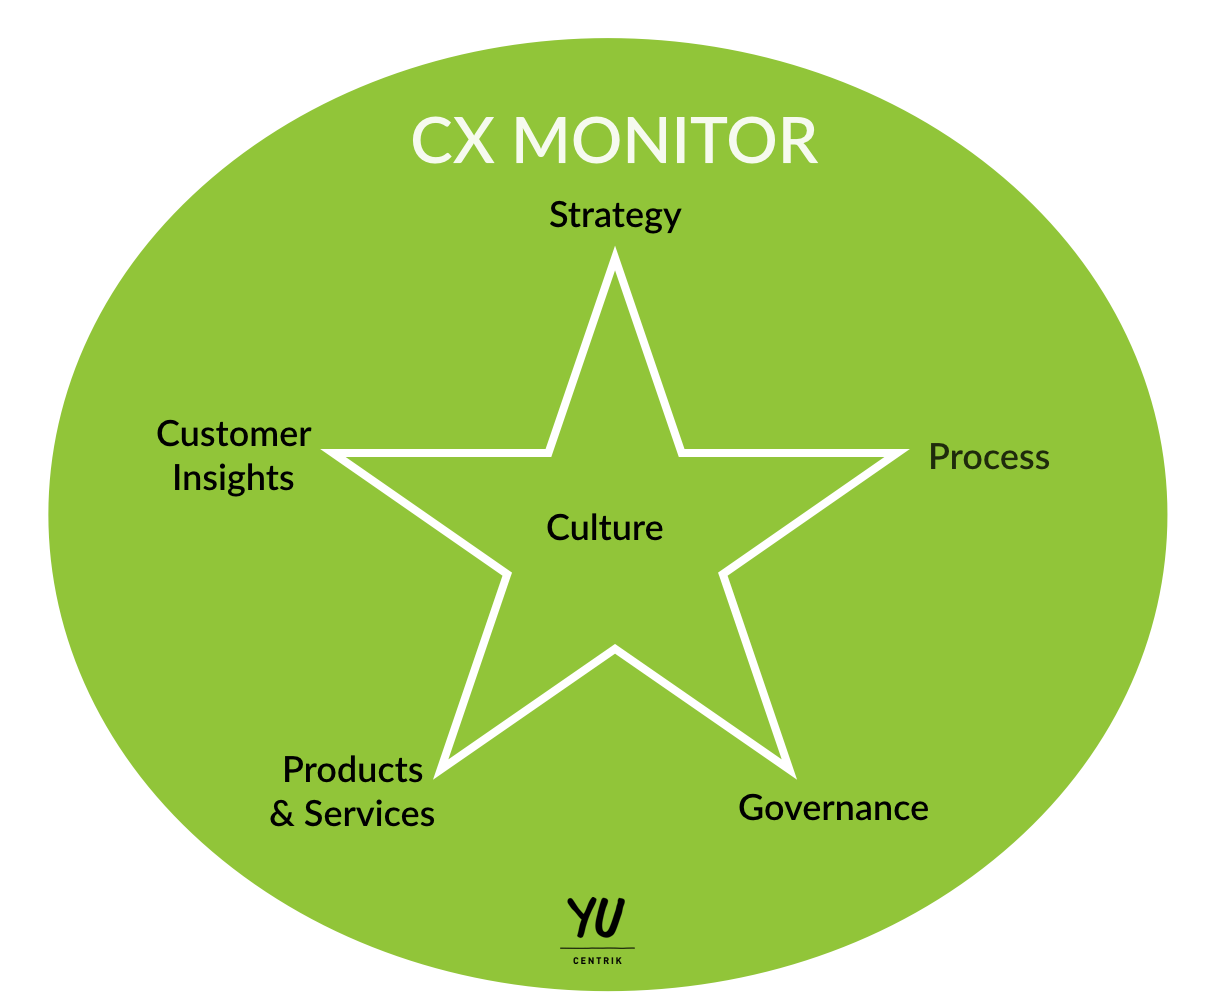 Have you evaluated the maturity of customer experience in your organisation?